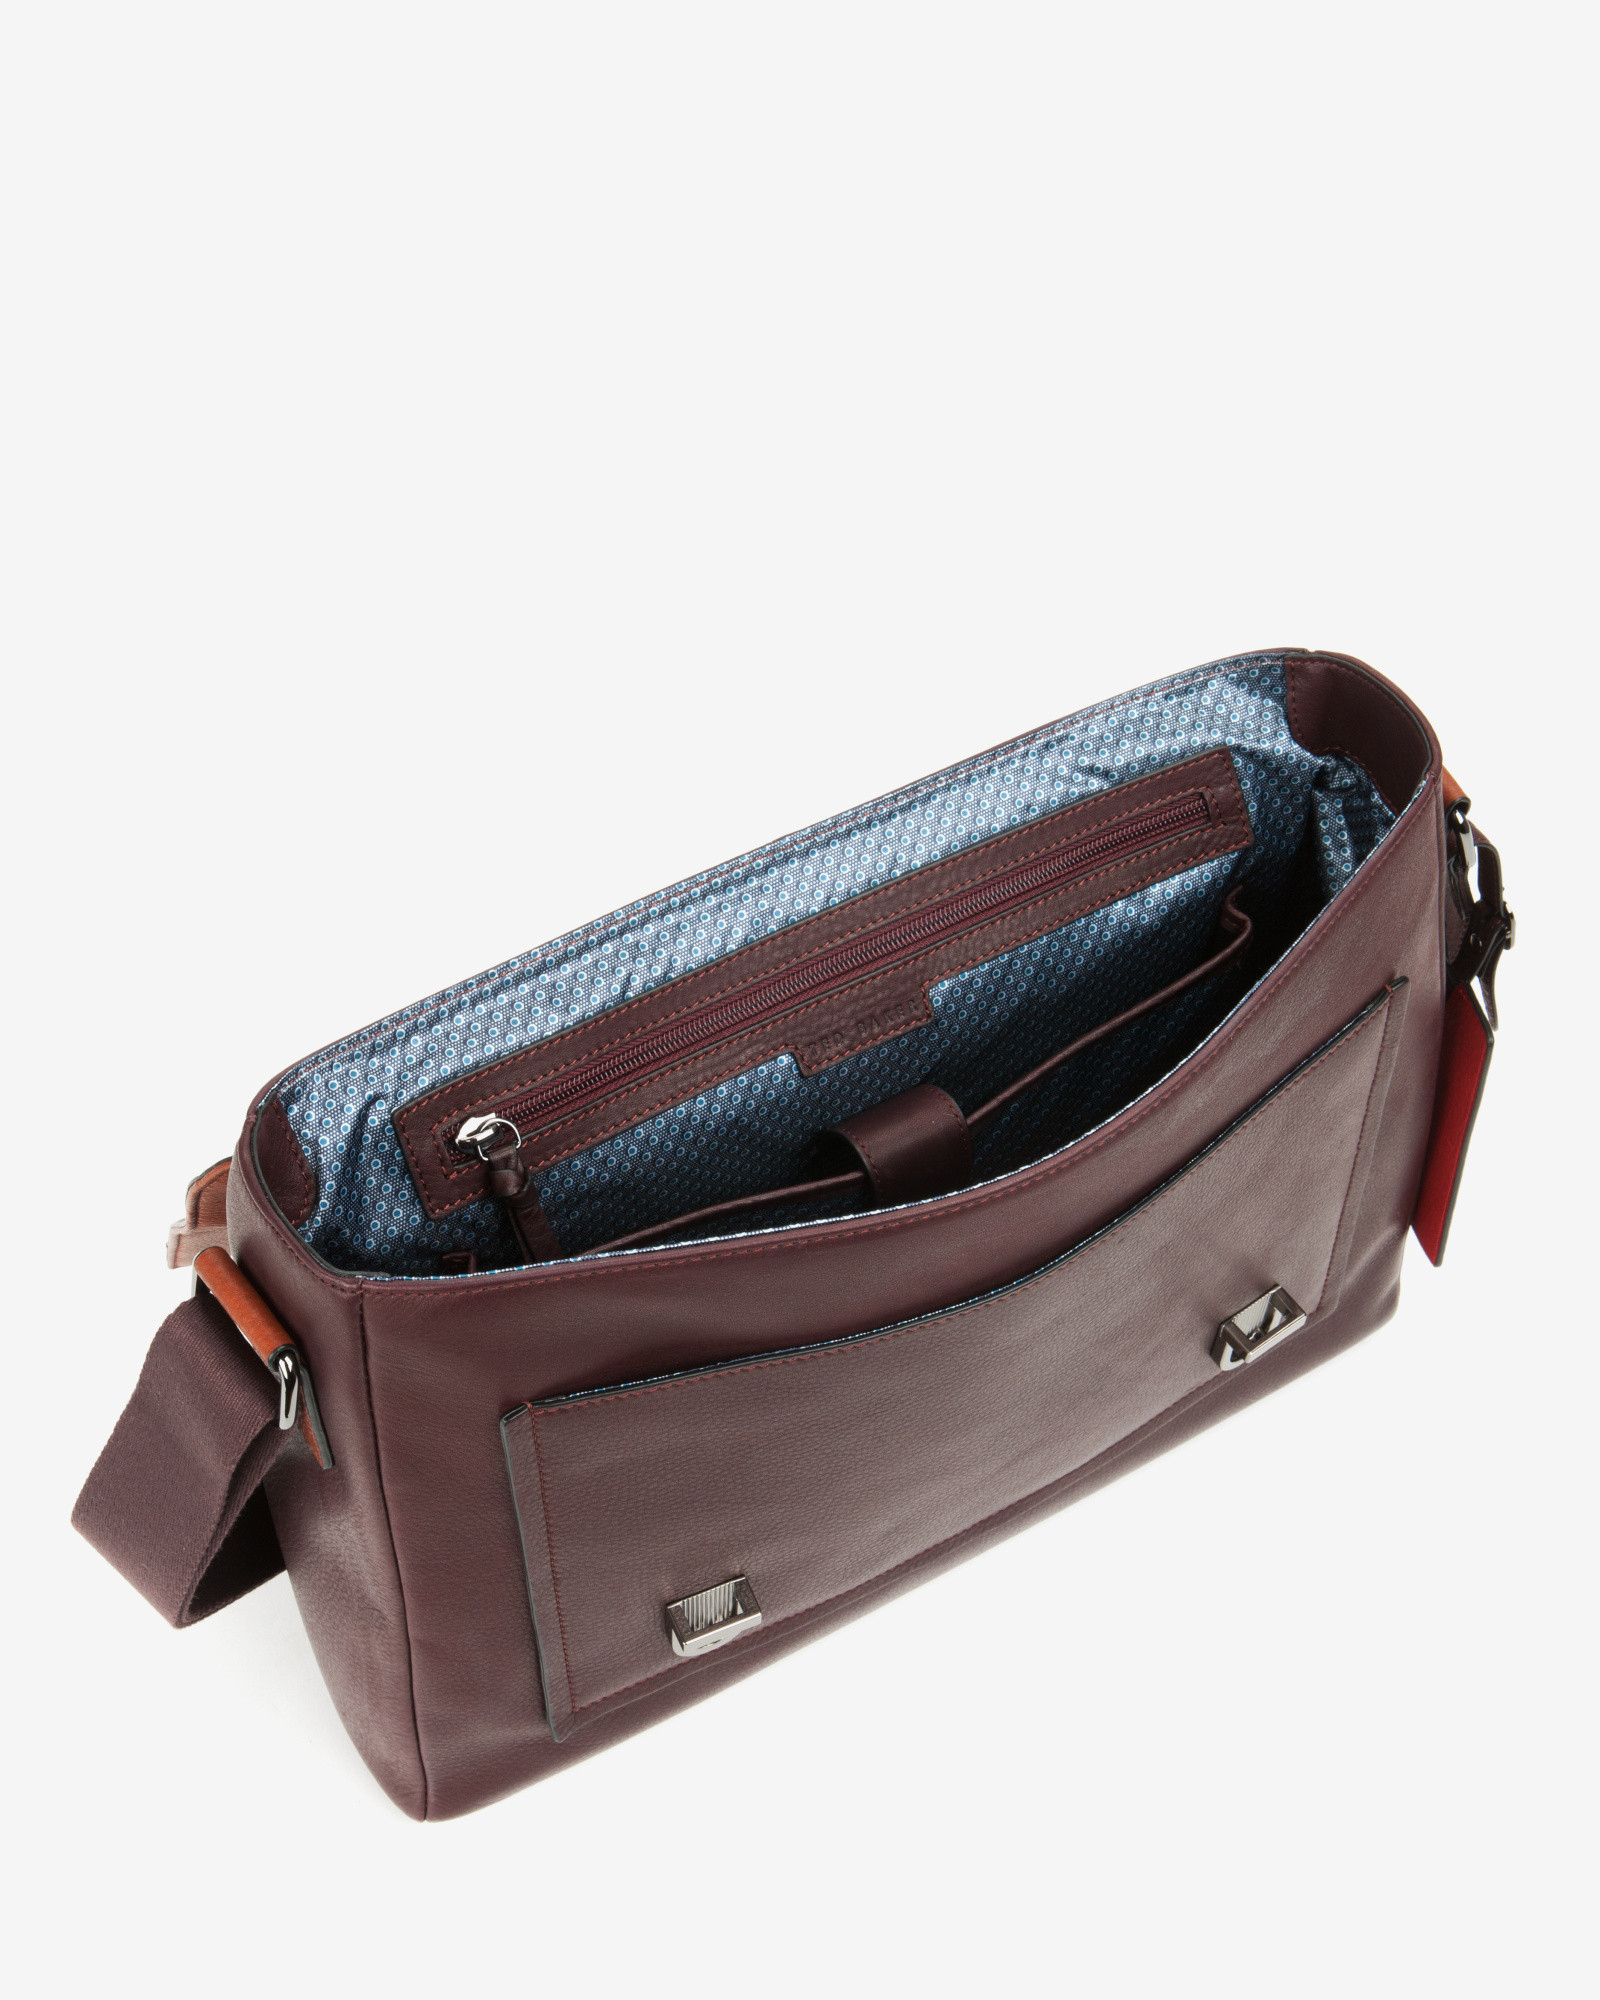 9a2530b6892f5b Lyst - Ted Baker Tonal Leather Satchel Bag in Purple for Men